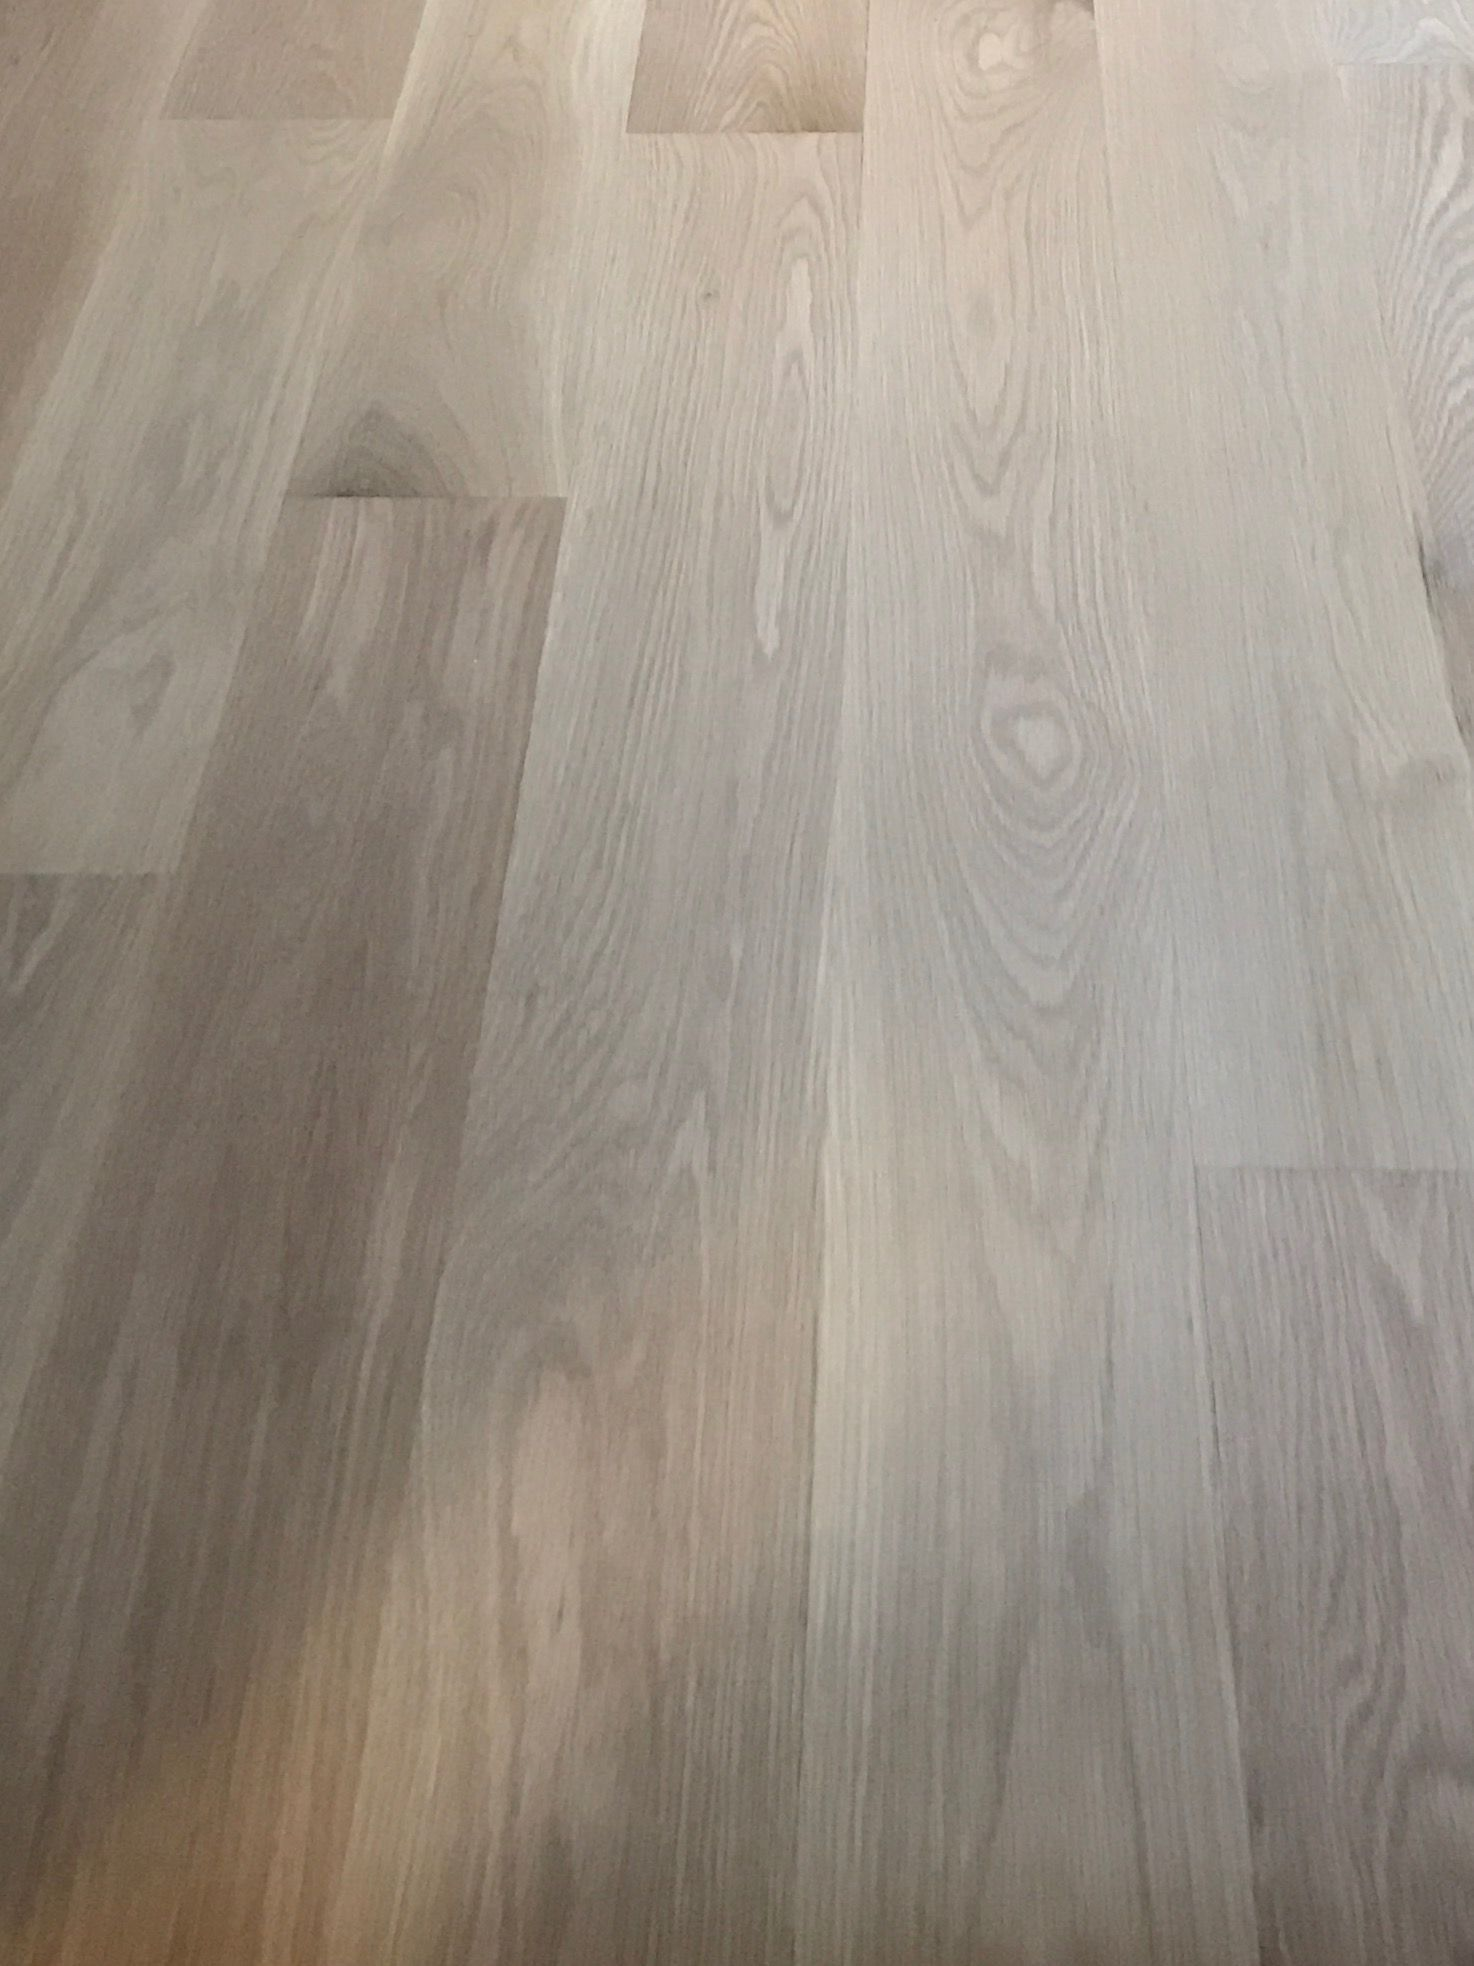 White Oak Floors With Pickled Wash On Wiped Off Then Ultra Matte Bona Hd